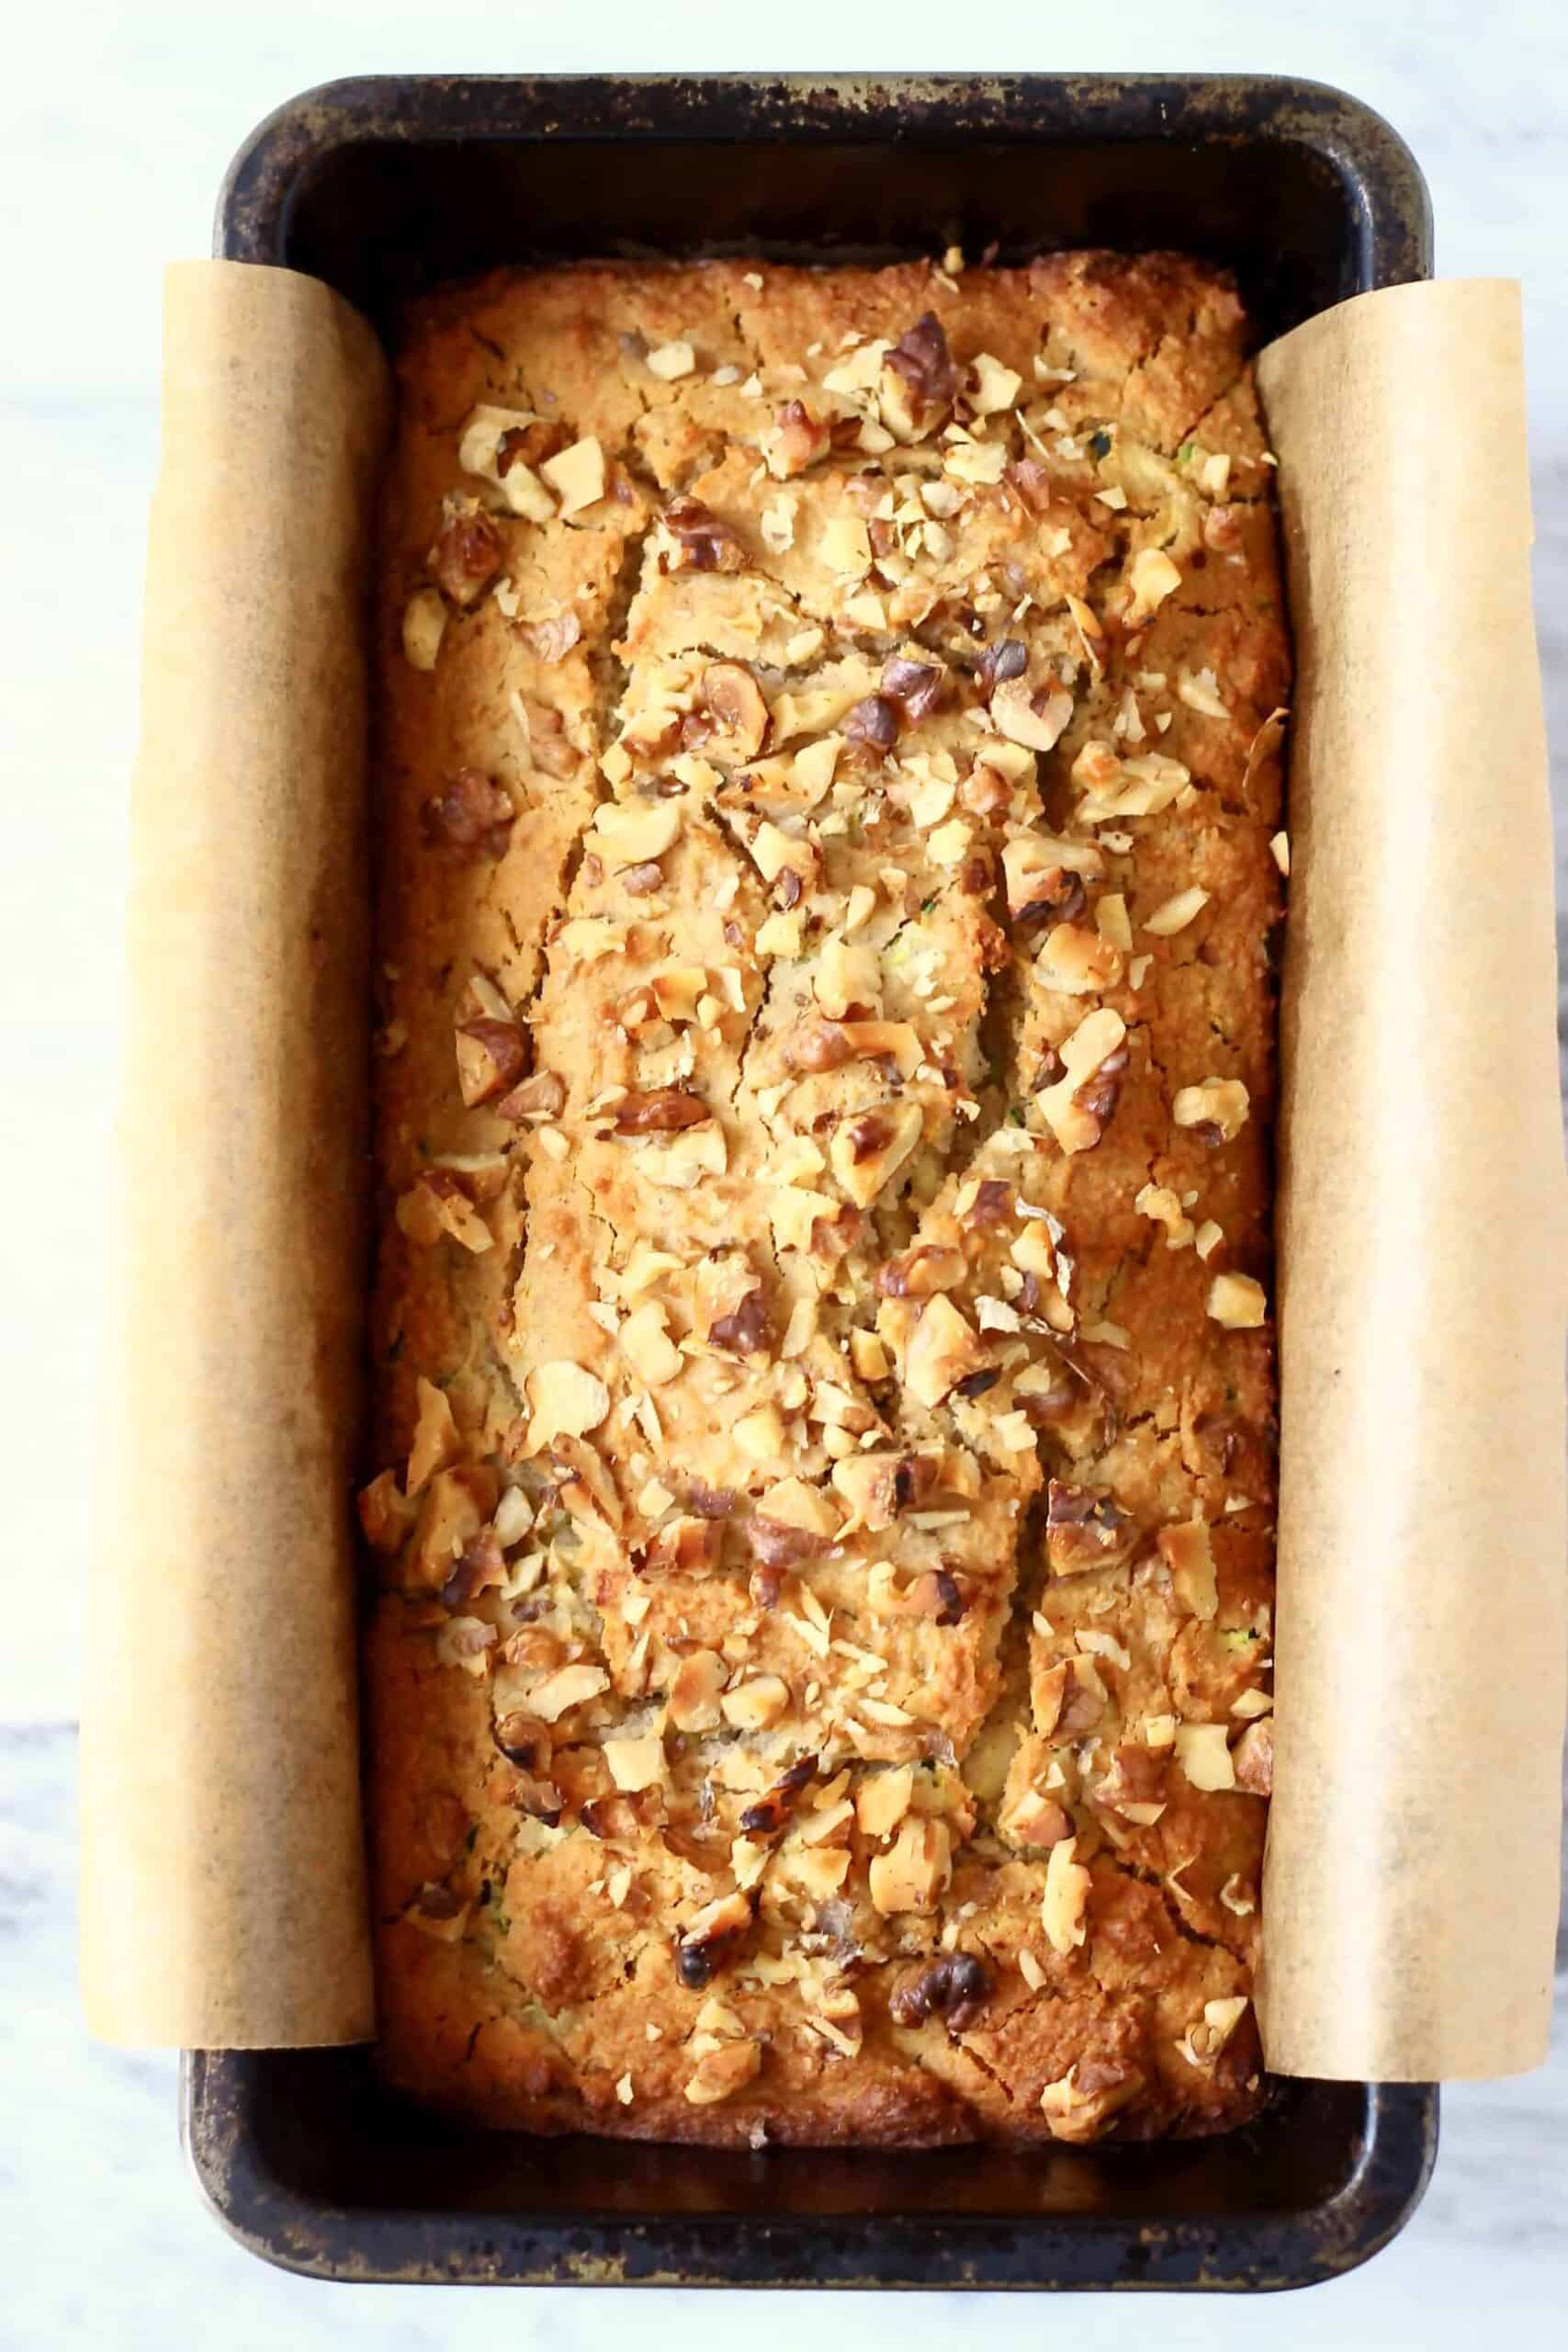 A loaf of gluten-free vegan zucchini bread in a loaf tin lined with baking paper